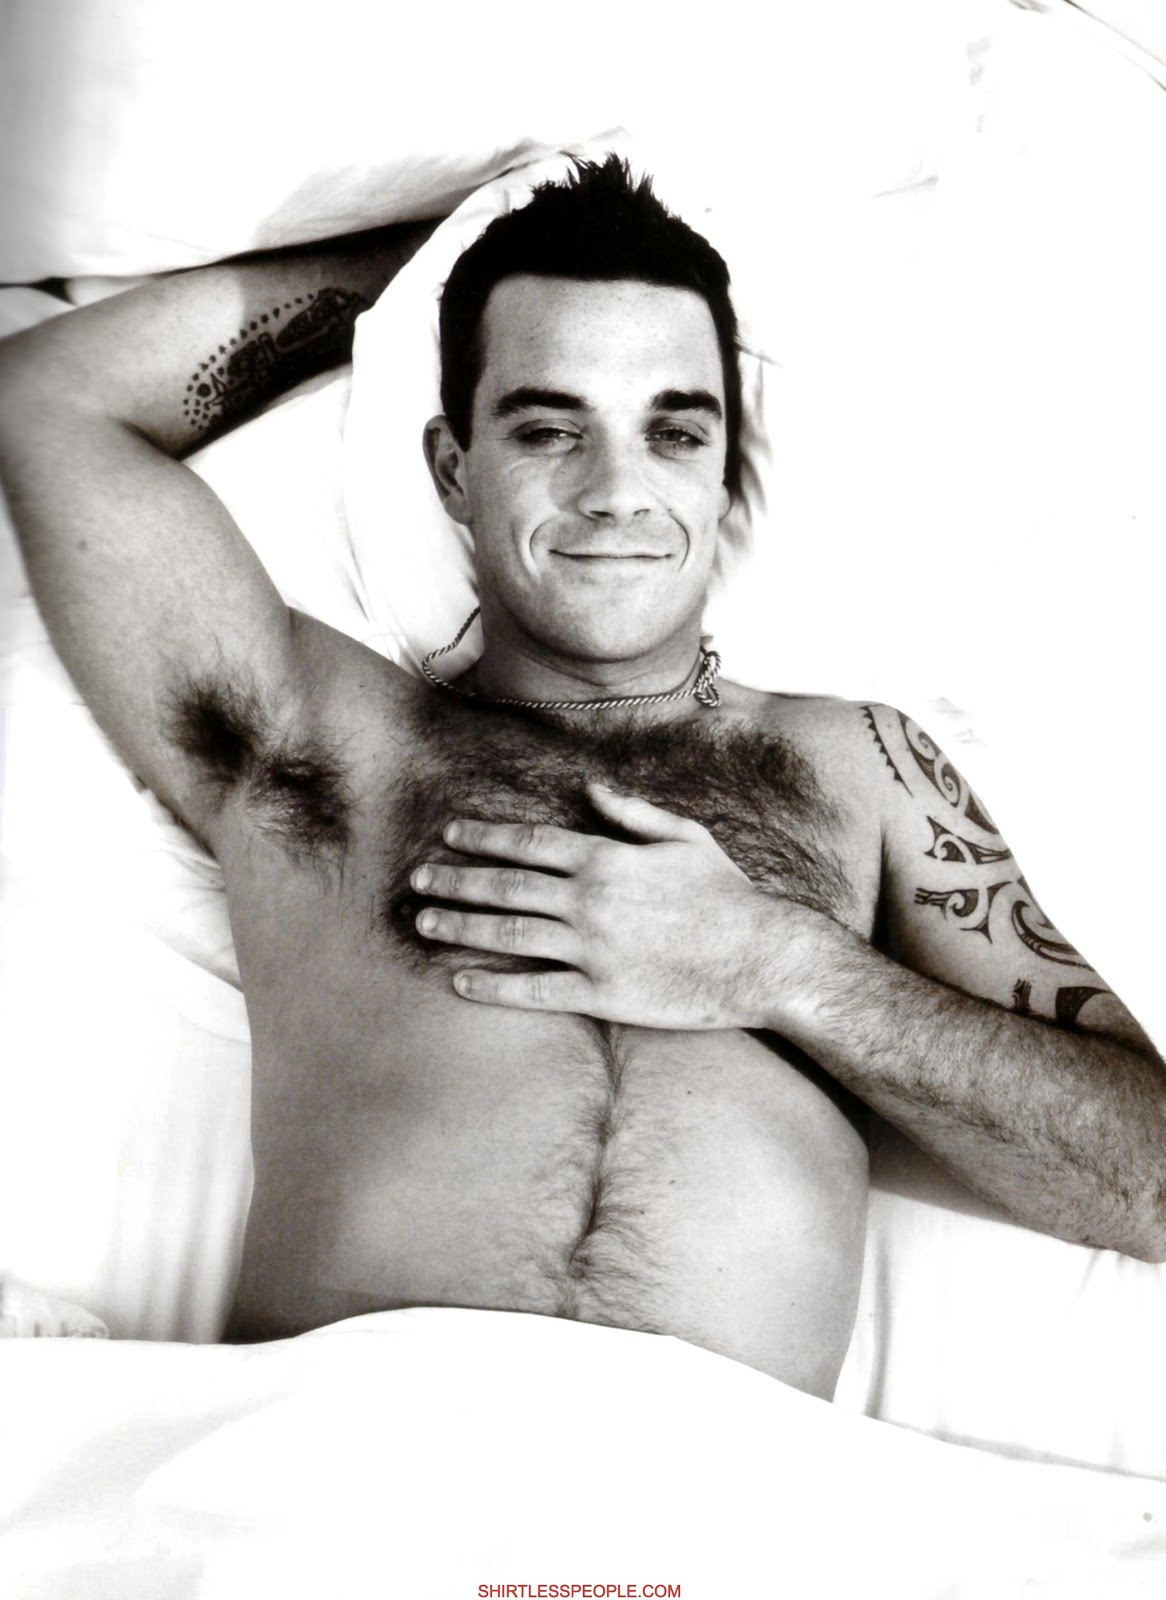 Sexy robbie williams with his sexy body remarkable